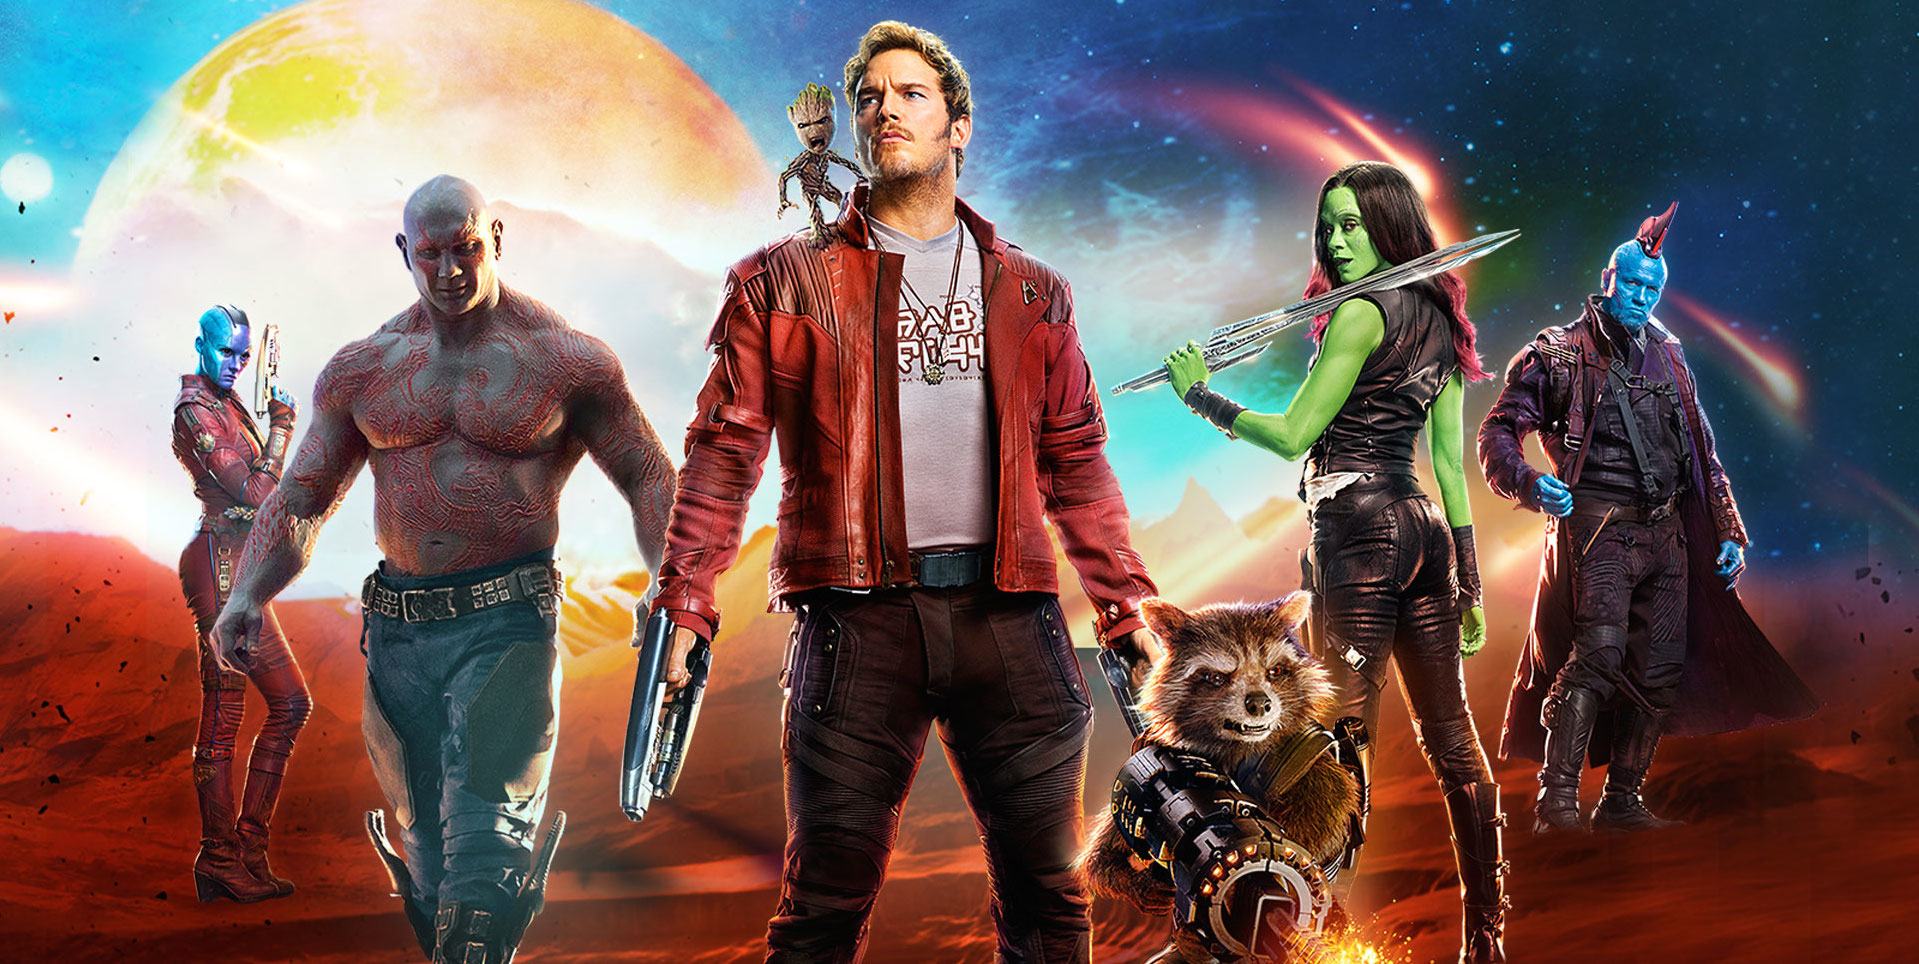 Guardians Of The Galaxy Vol. 3 Rumored to be Eyeing Female Director